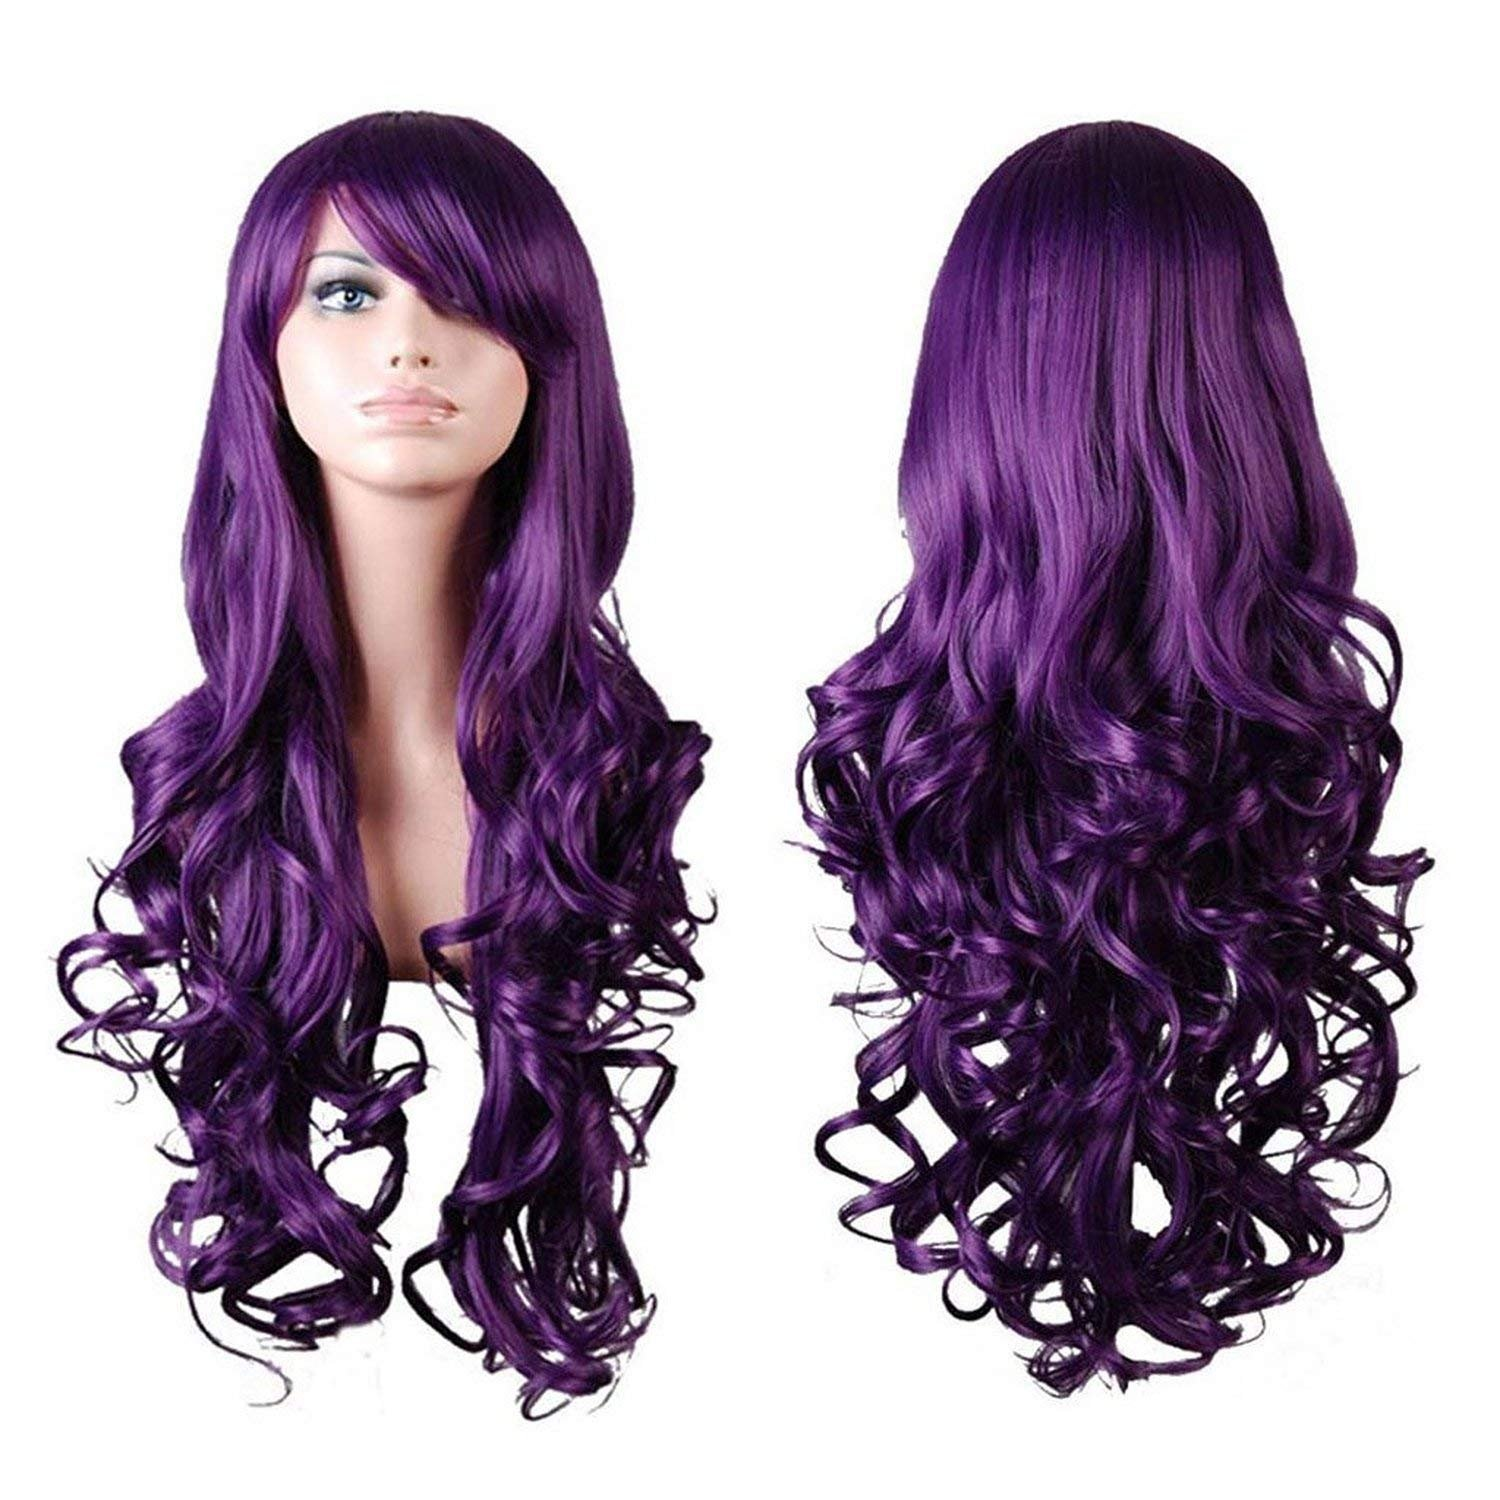 Rbenxia Curly Cosplay Wig Long Hair Heat Resistant Spiral Costume Wigs Anime Fashion Wavy Curly Cosplay Daily Party Purple 32'' 80cm